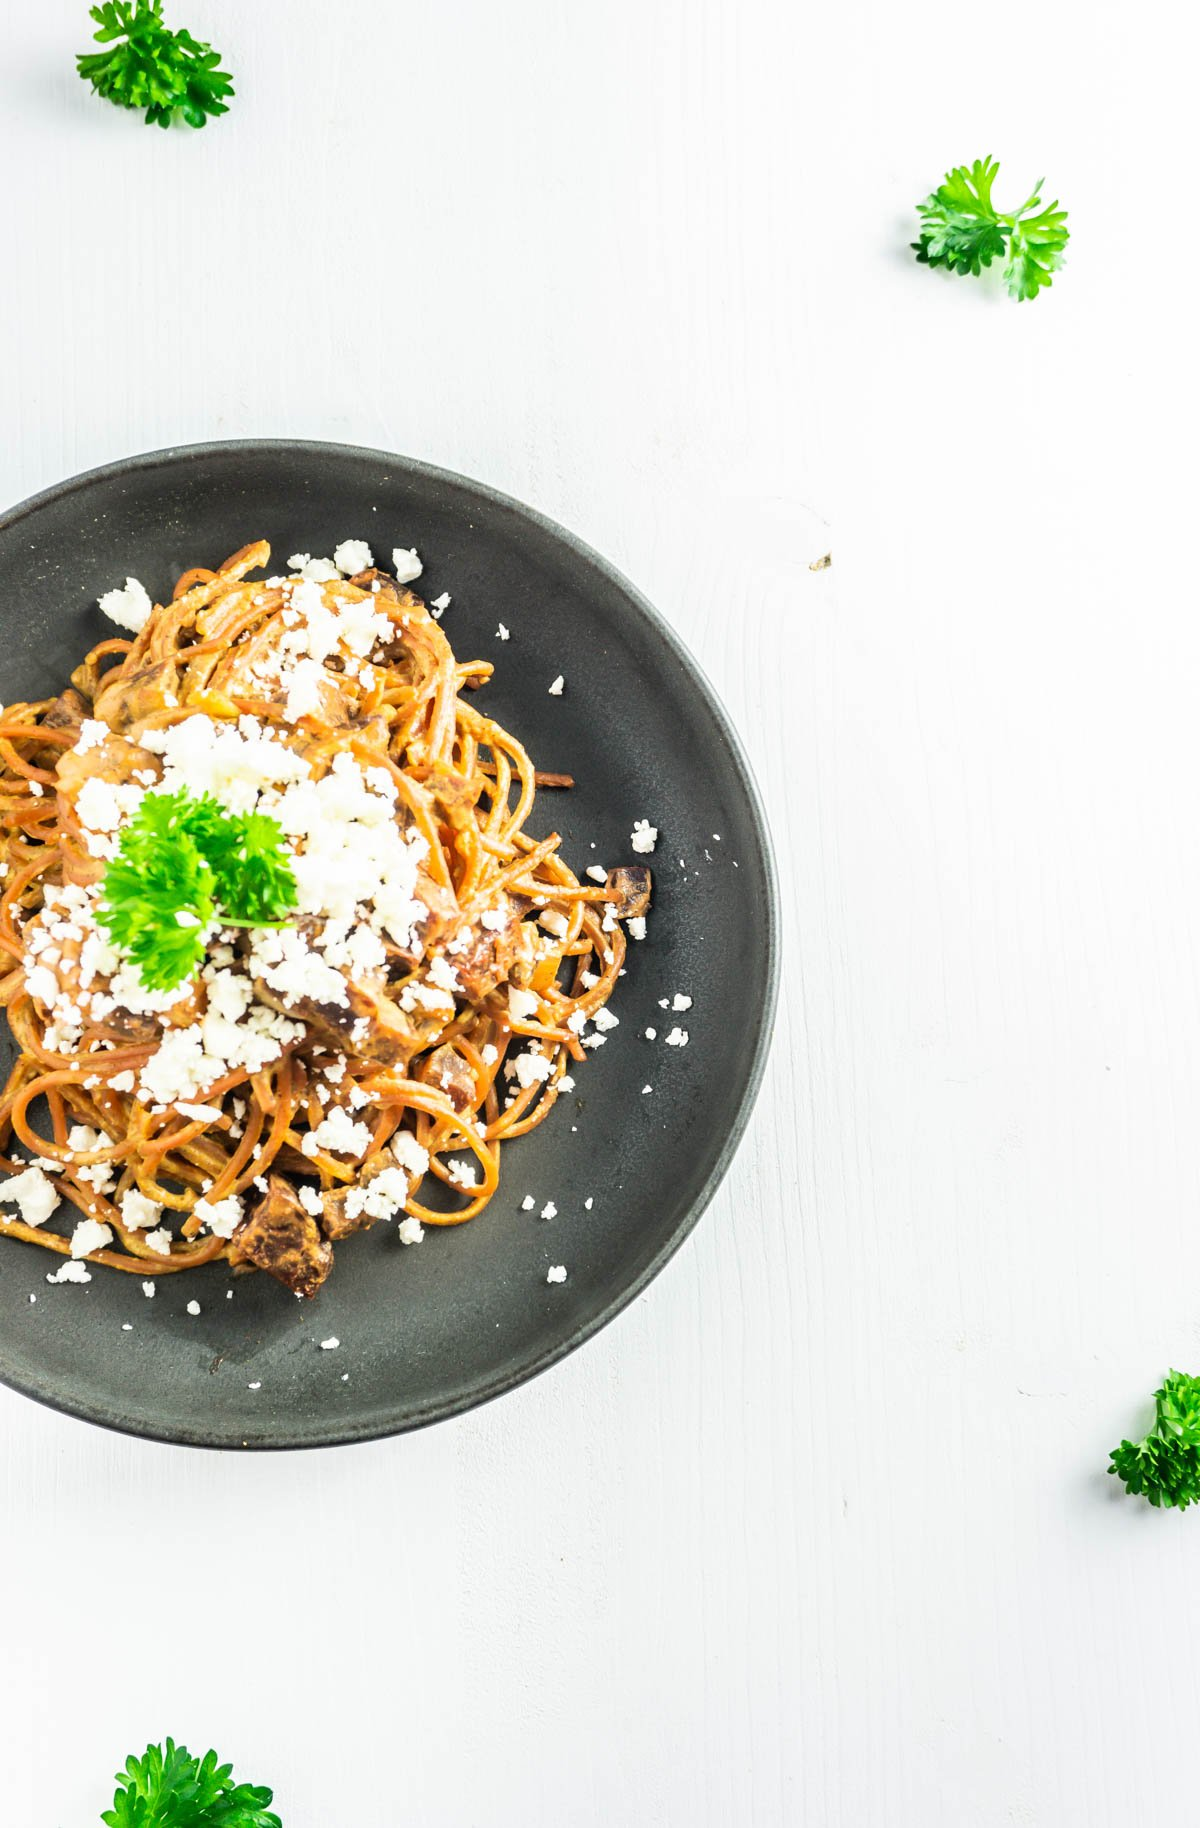 Creamy beetroot pasta on a plate with scattered parsley and feta cheese on top